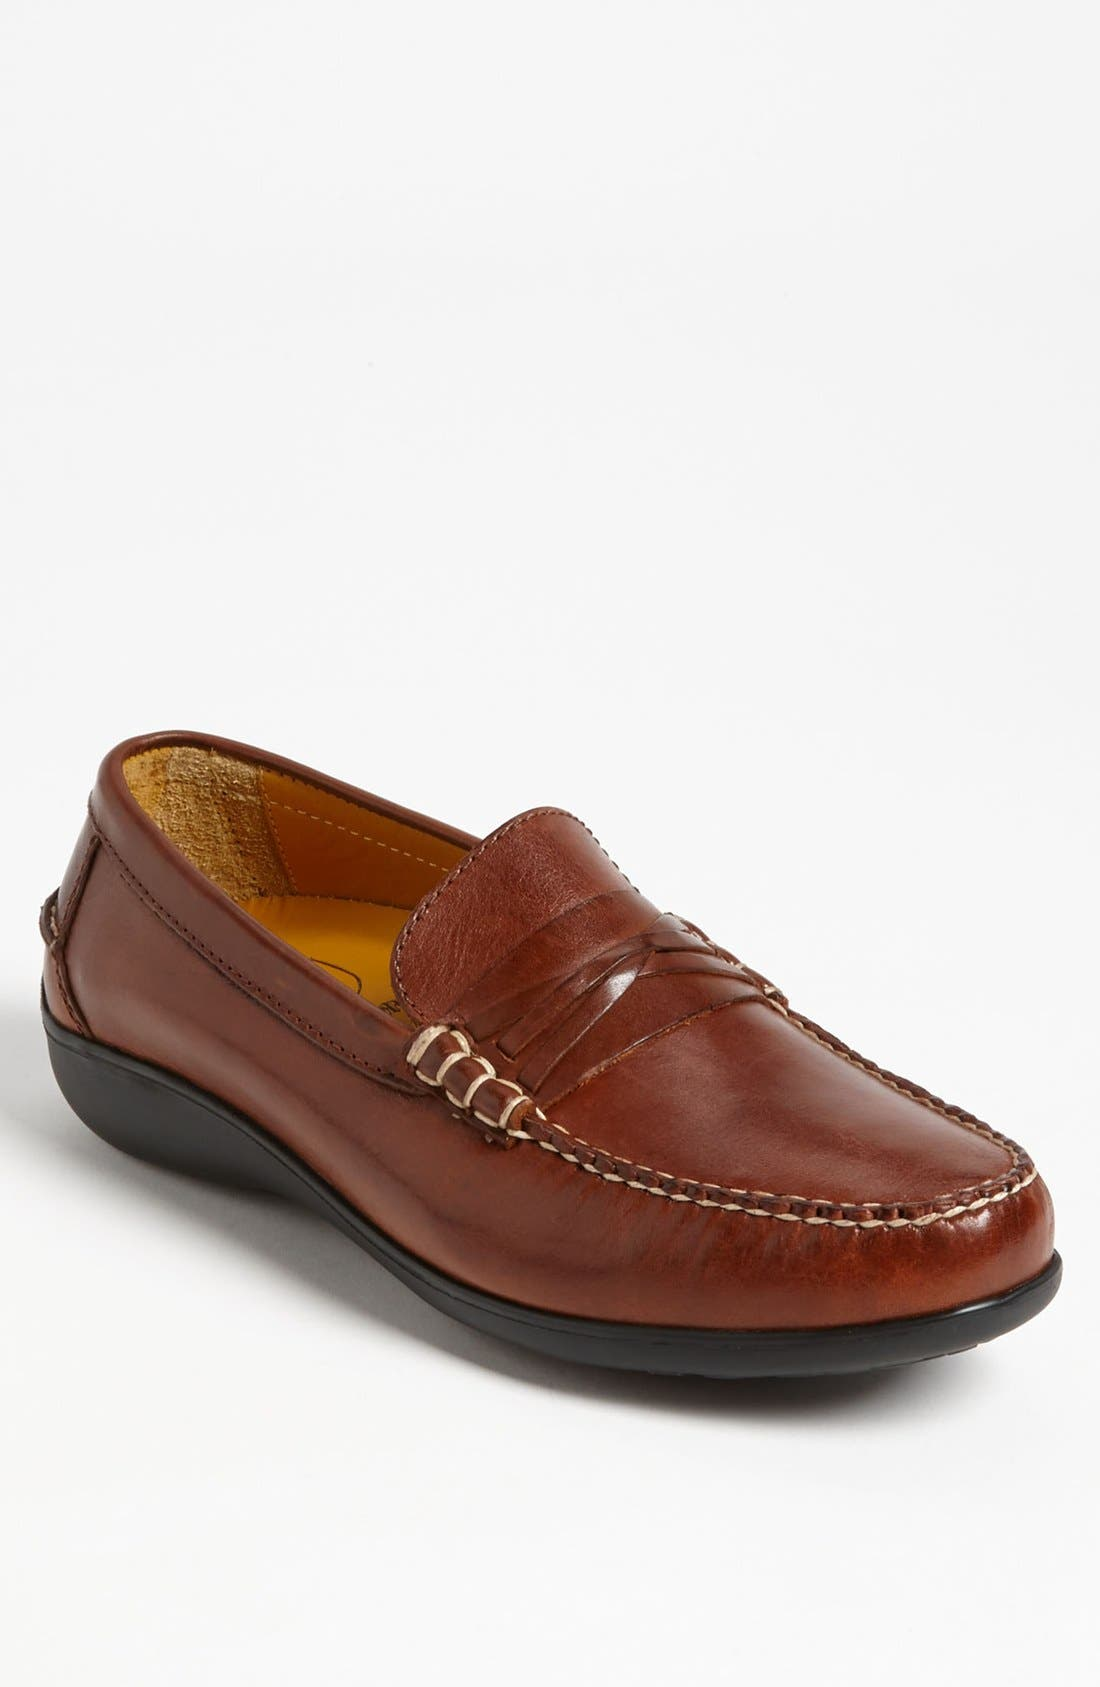 NEIL M, 'Truman' Loafer, Main thumbnail 1, color, CHESTNUT